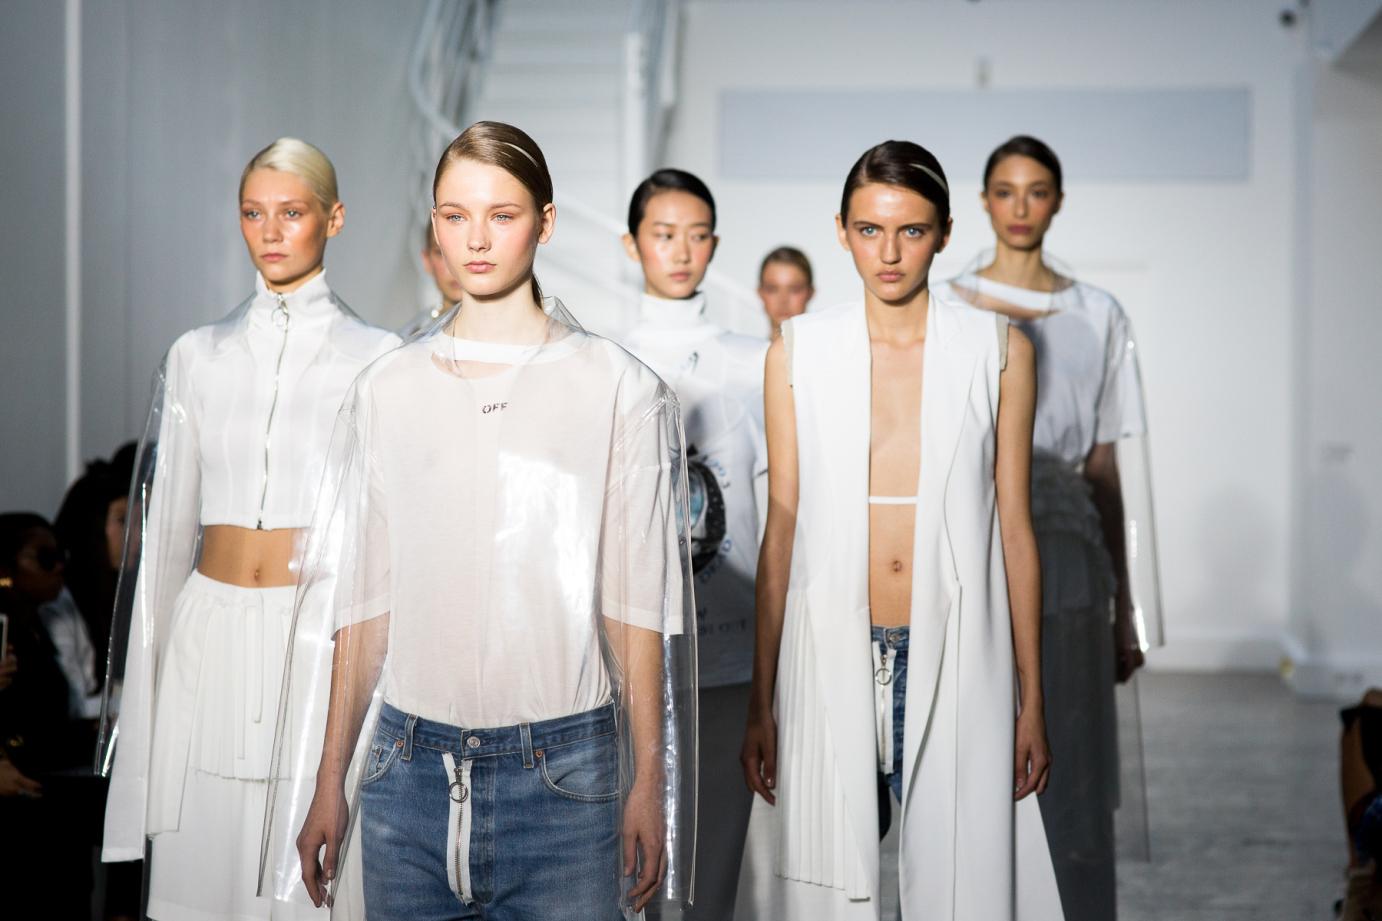 a-closer-look-at-off-white-c-o-virgil-abloh-2016-spring-summer-womens-collection1-20-off-white-c-o-virgil-abloh-2016-spring-summer-womens-collection2-20-off-white-c-o-virgil-abloh-2016-s.jpg